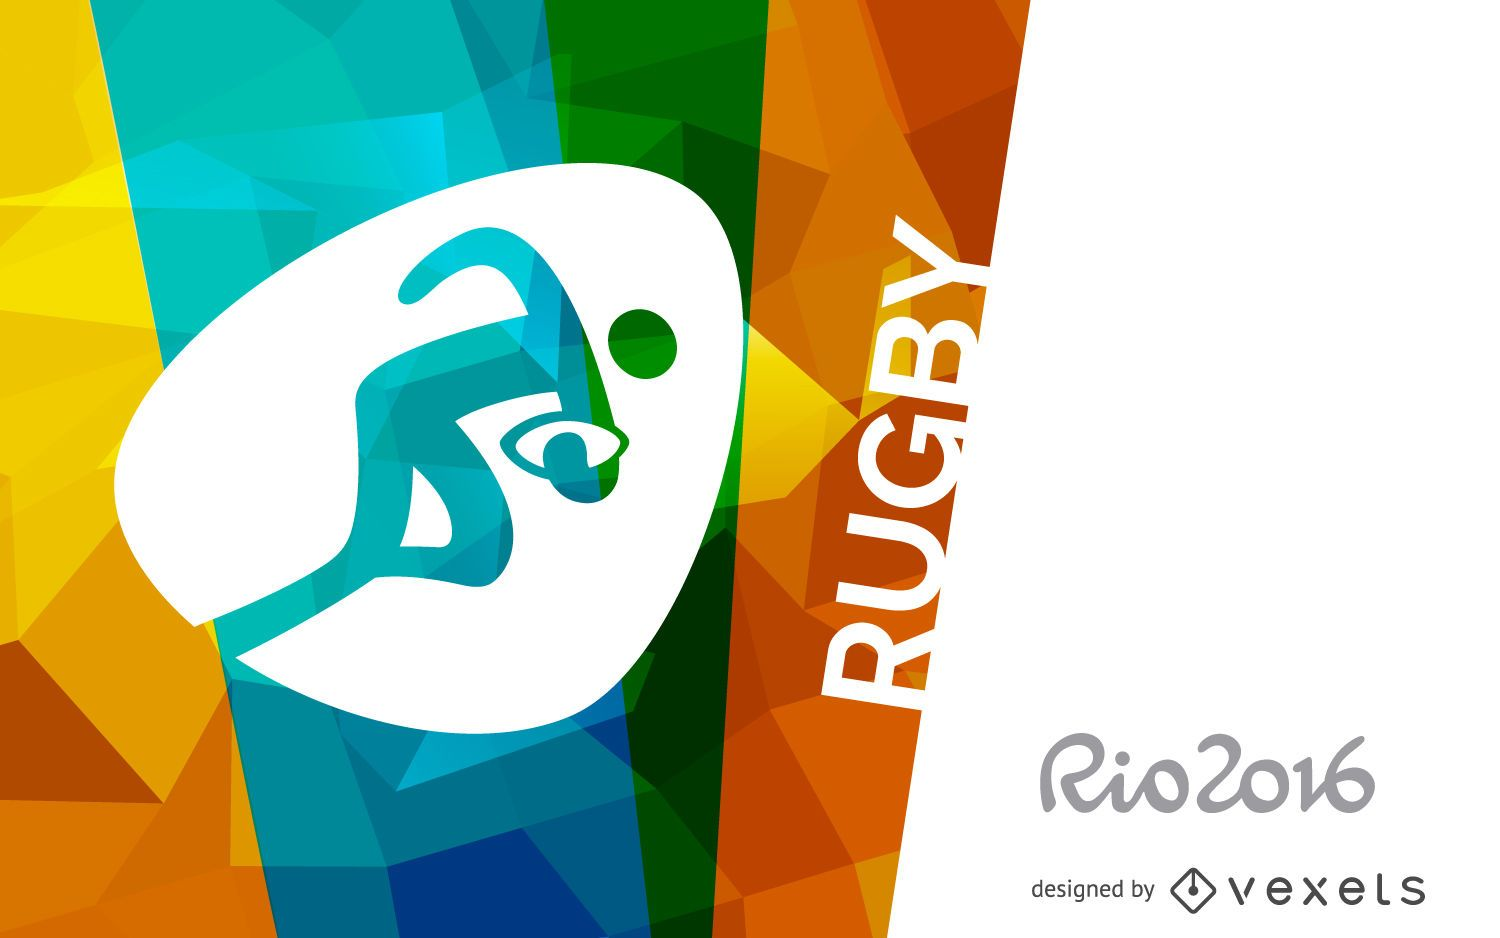 Rio 2016 rugby banner